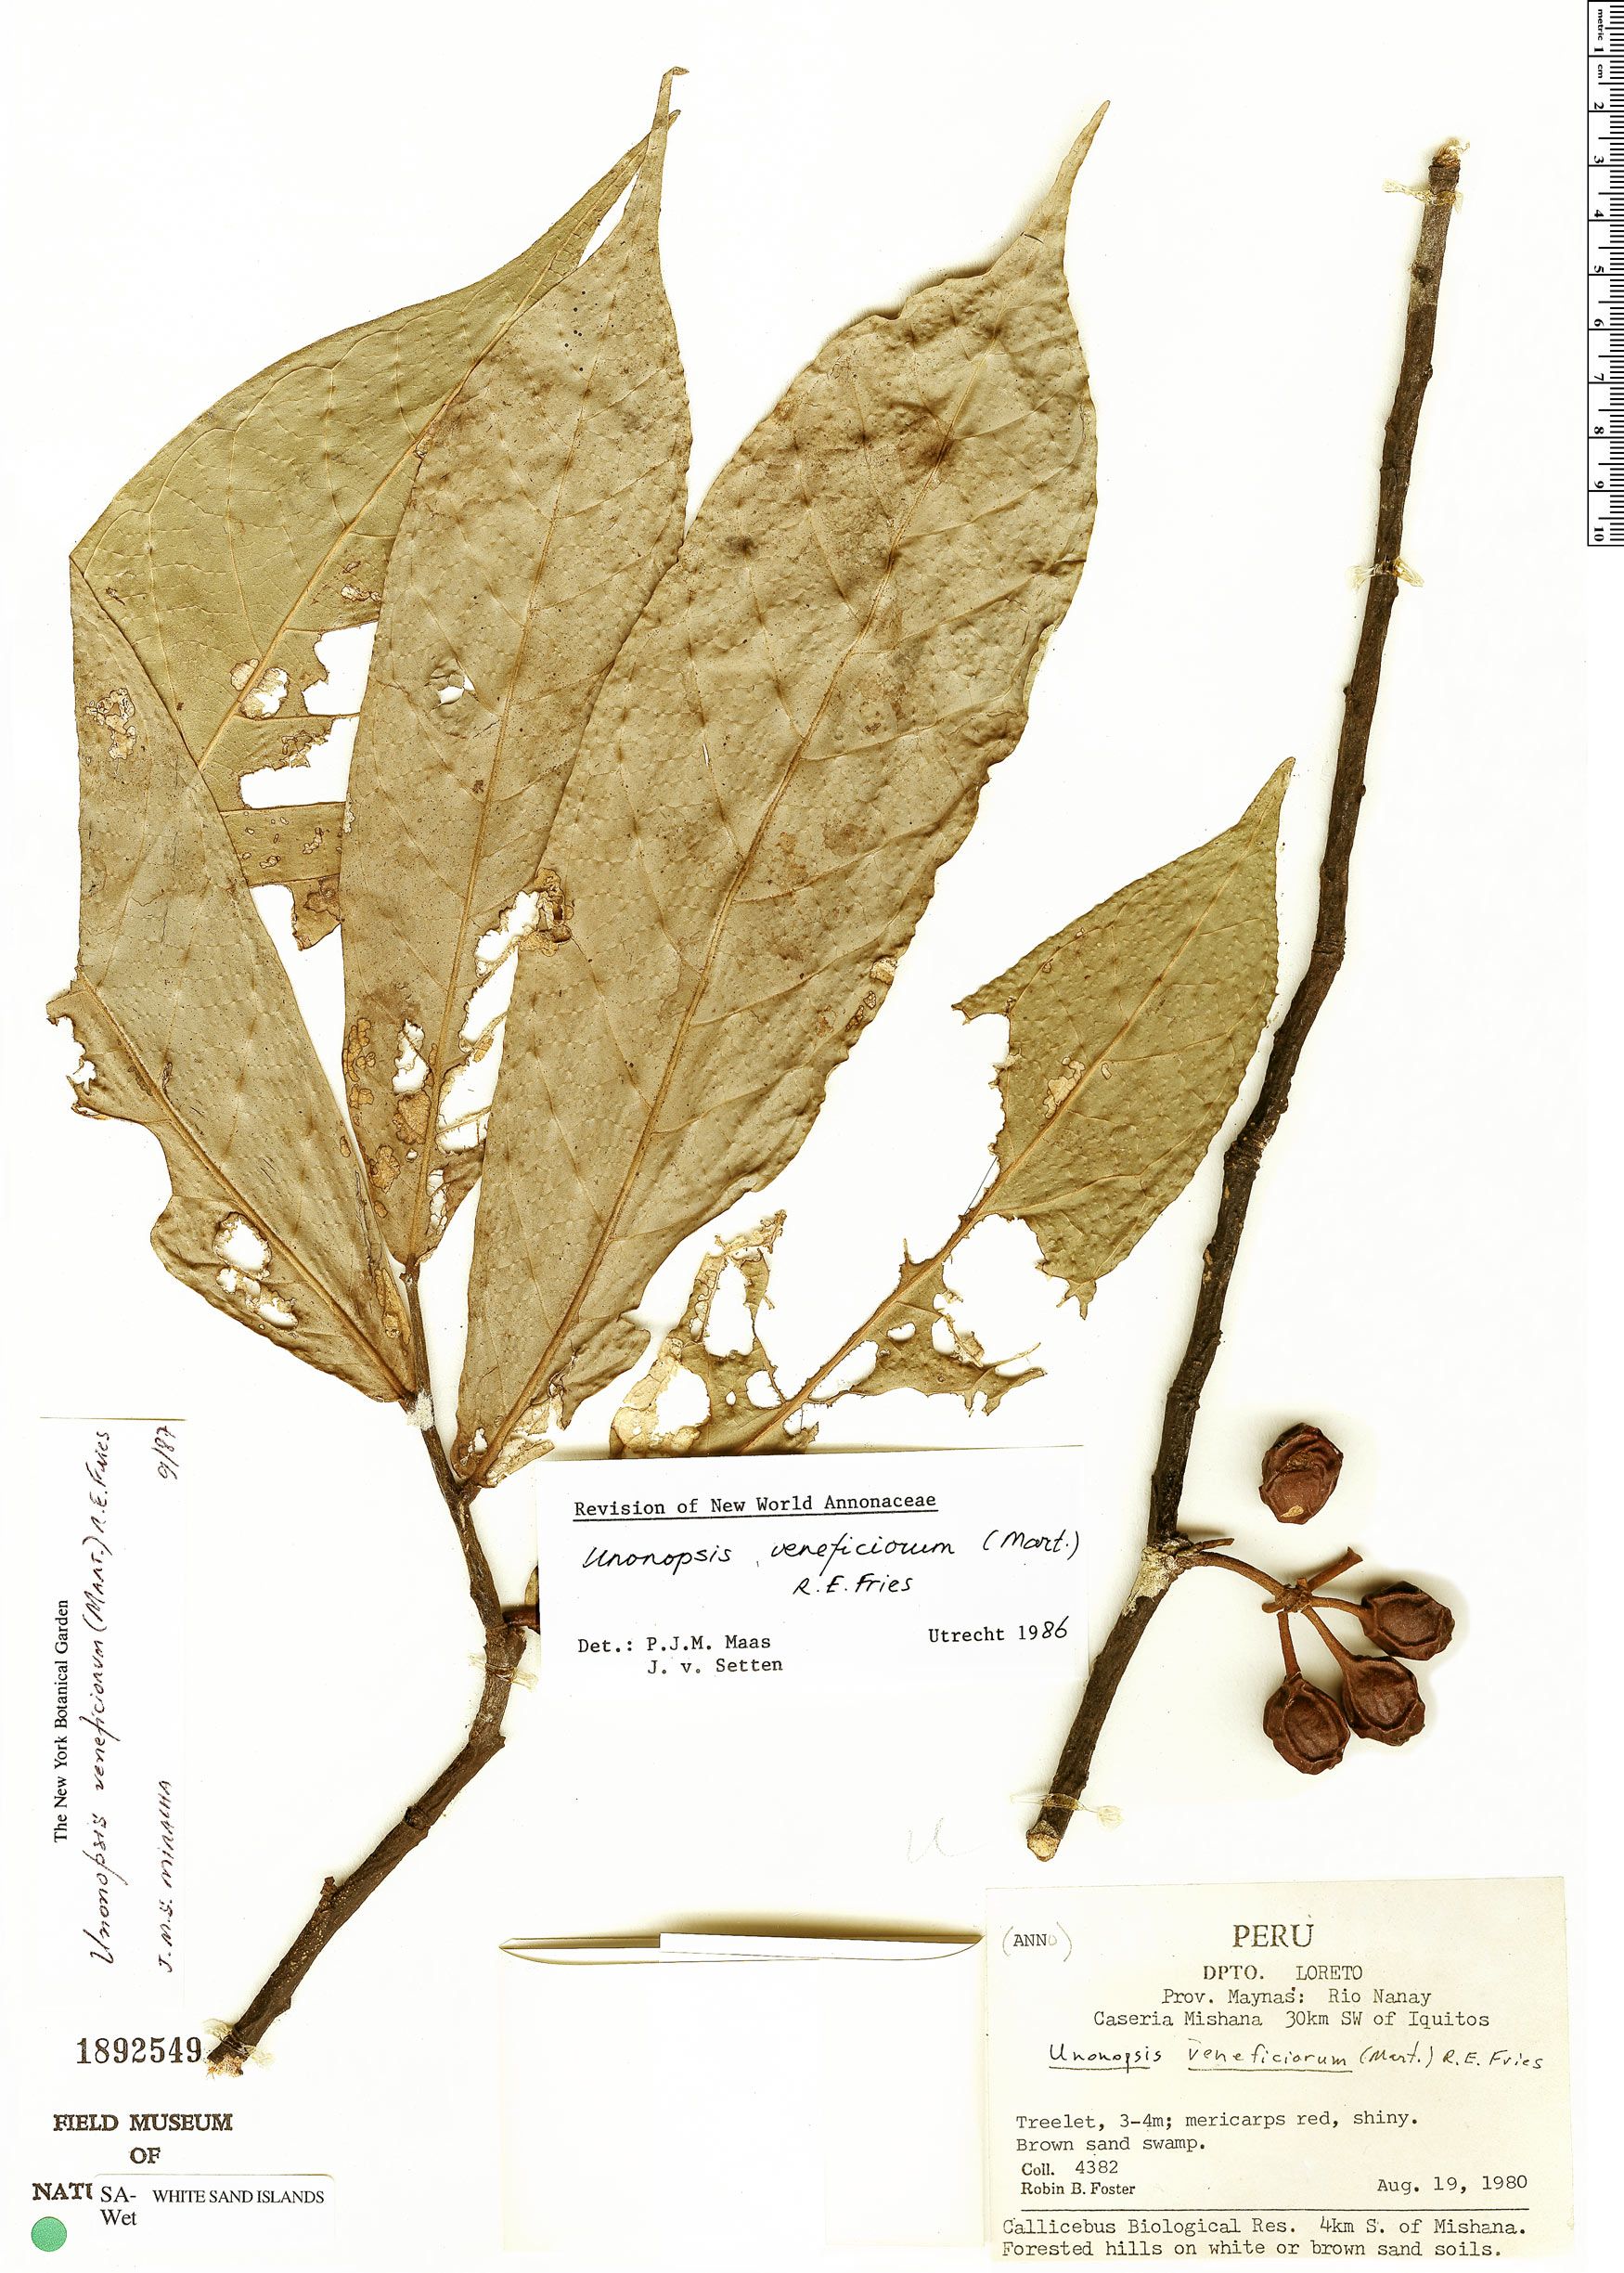 Specimen: Unonopsis veneficiorum